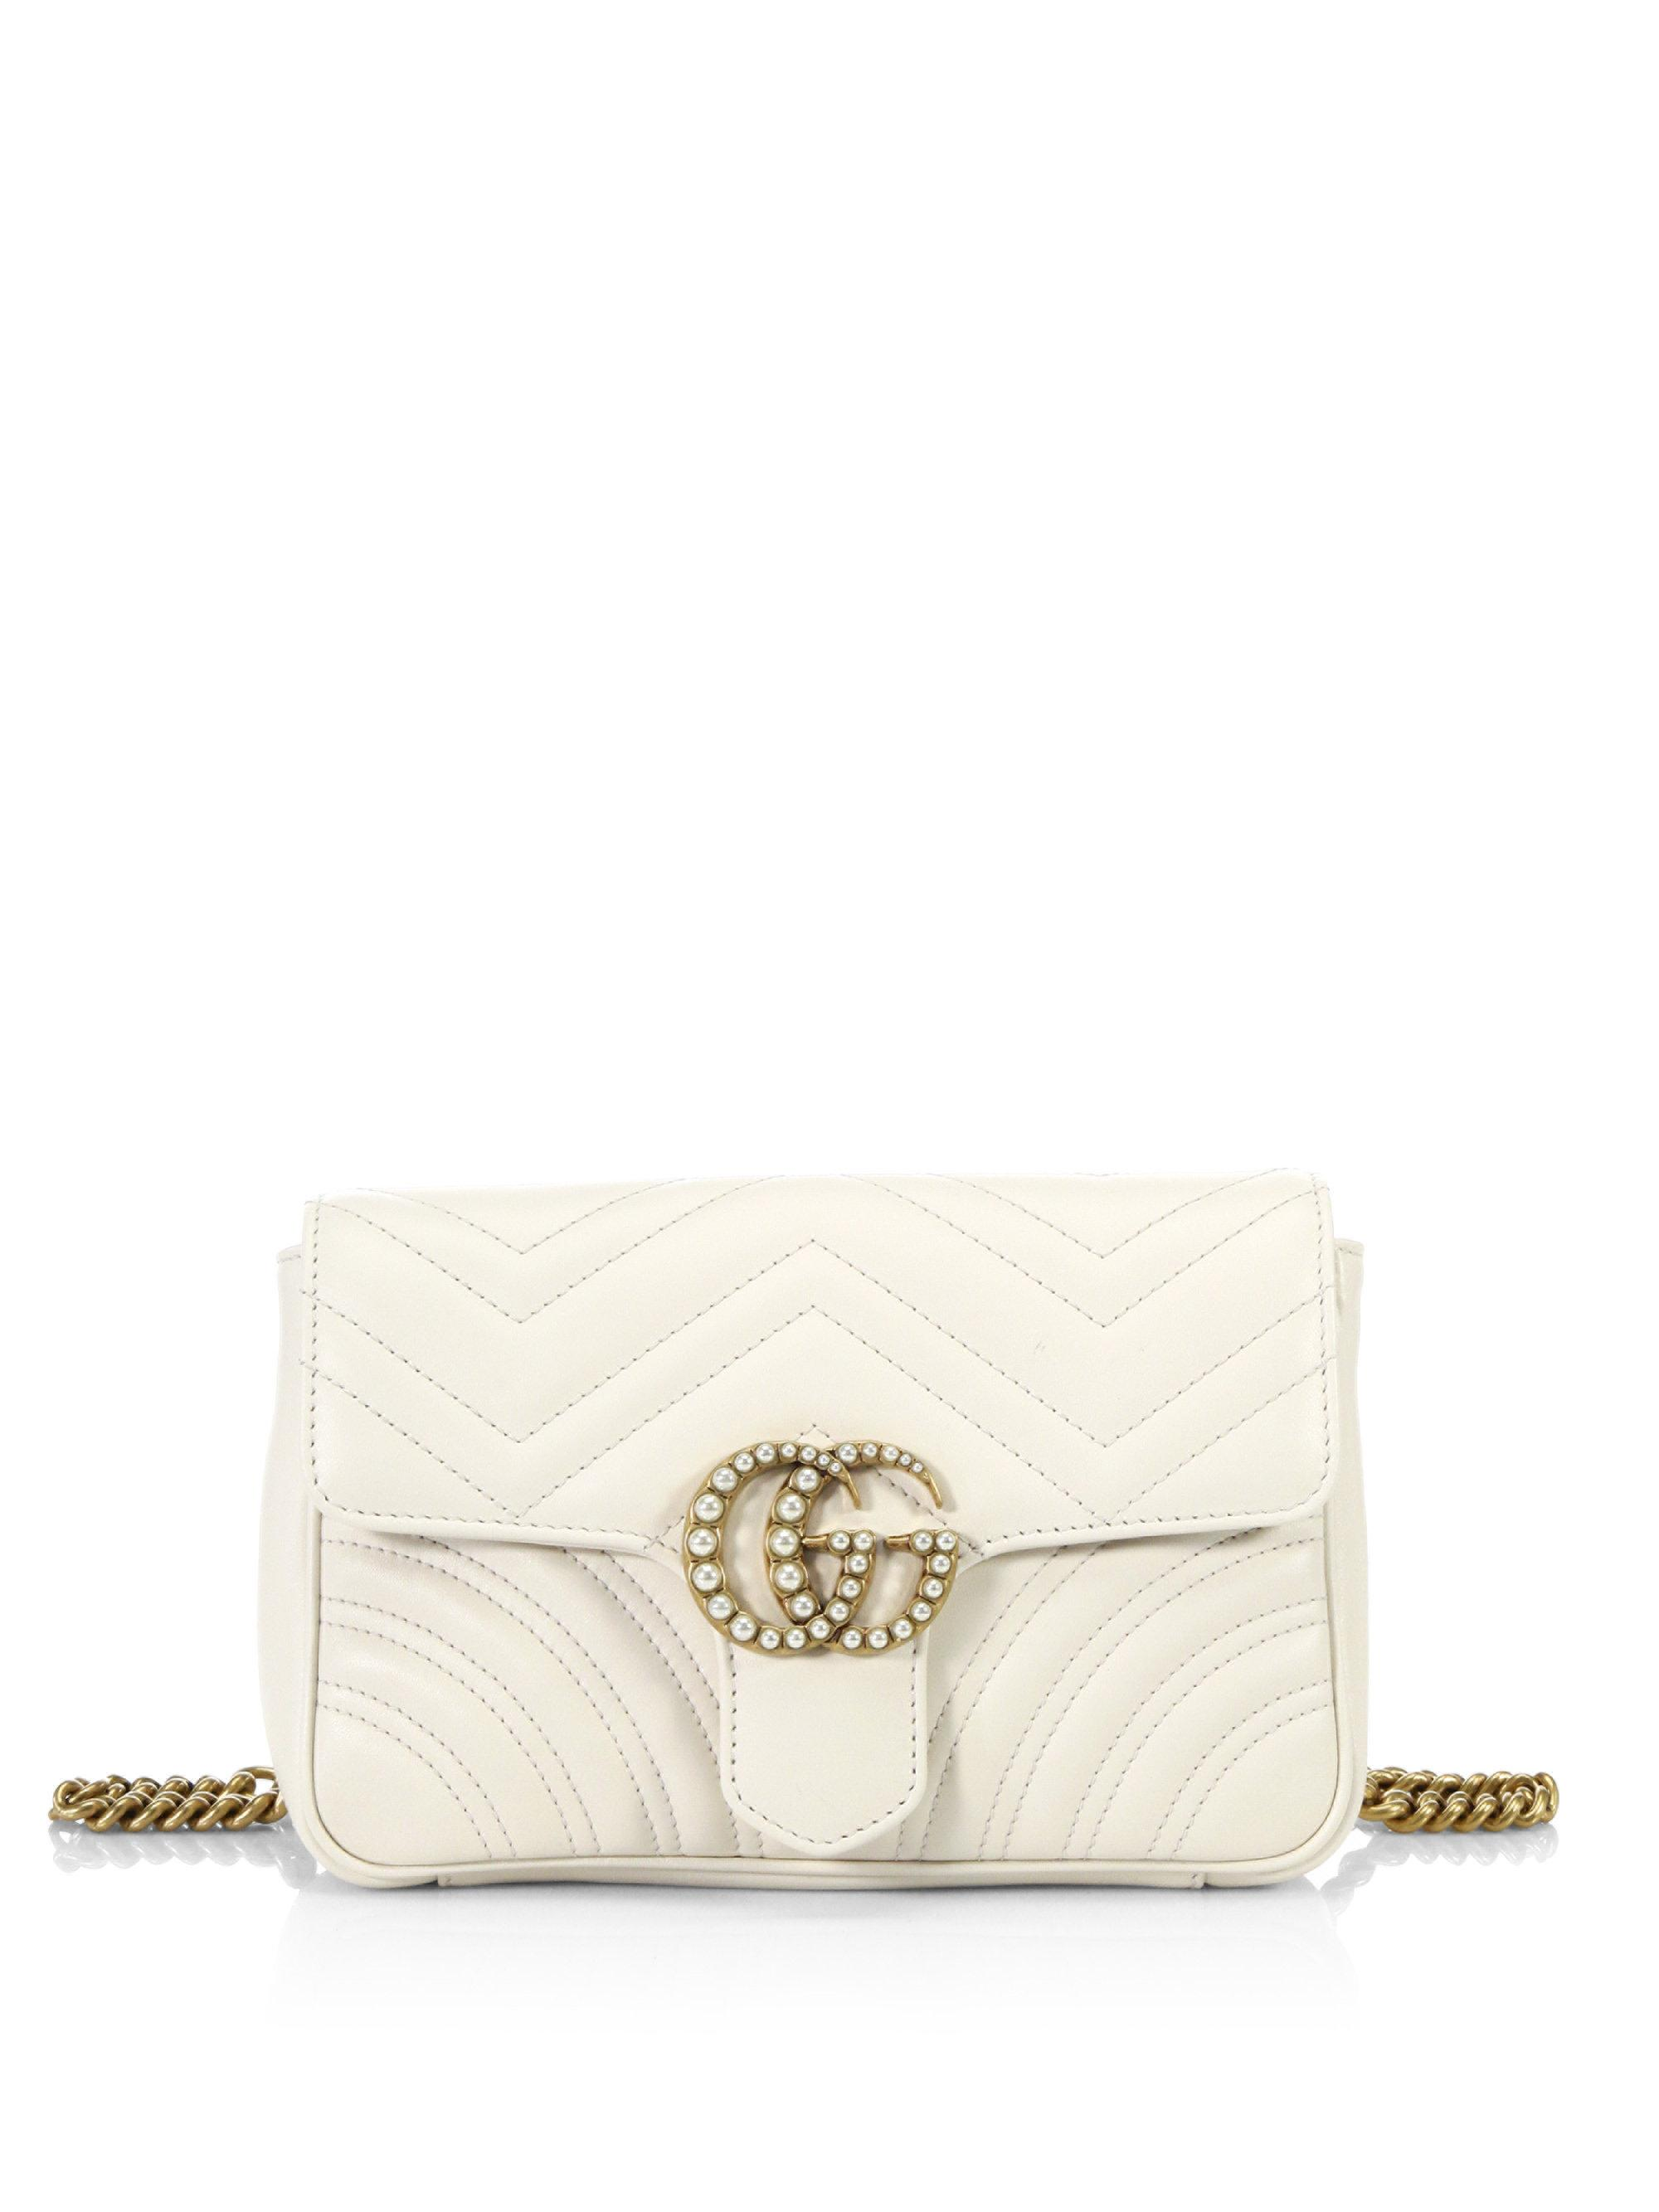 9f28e5462 Gucci Gg Marmont Quilted Leather Chain Belt Bag in White - Lyst